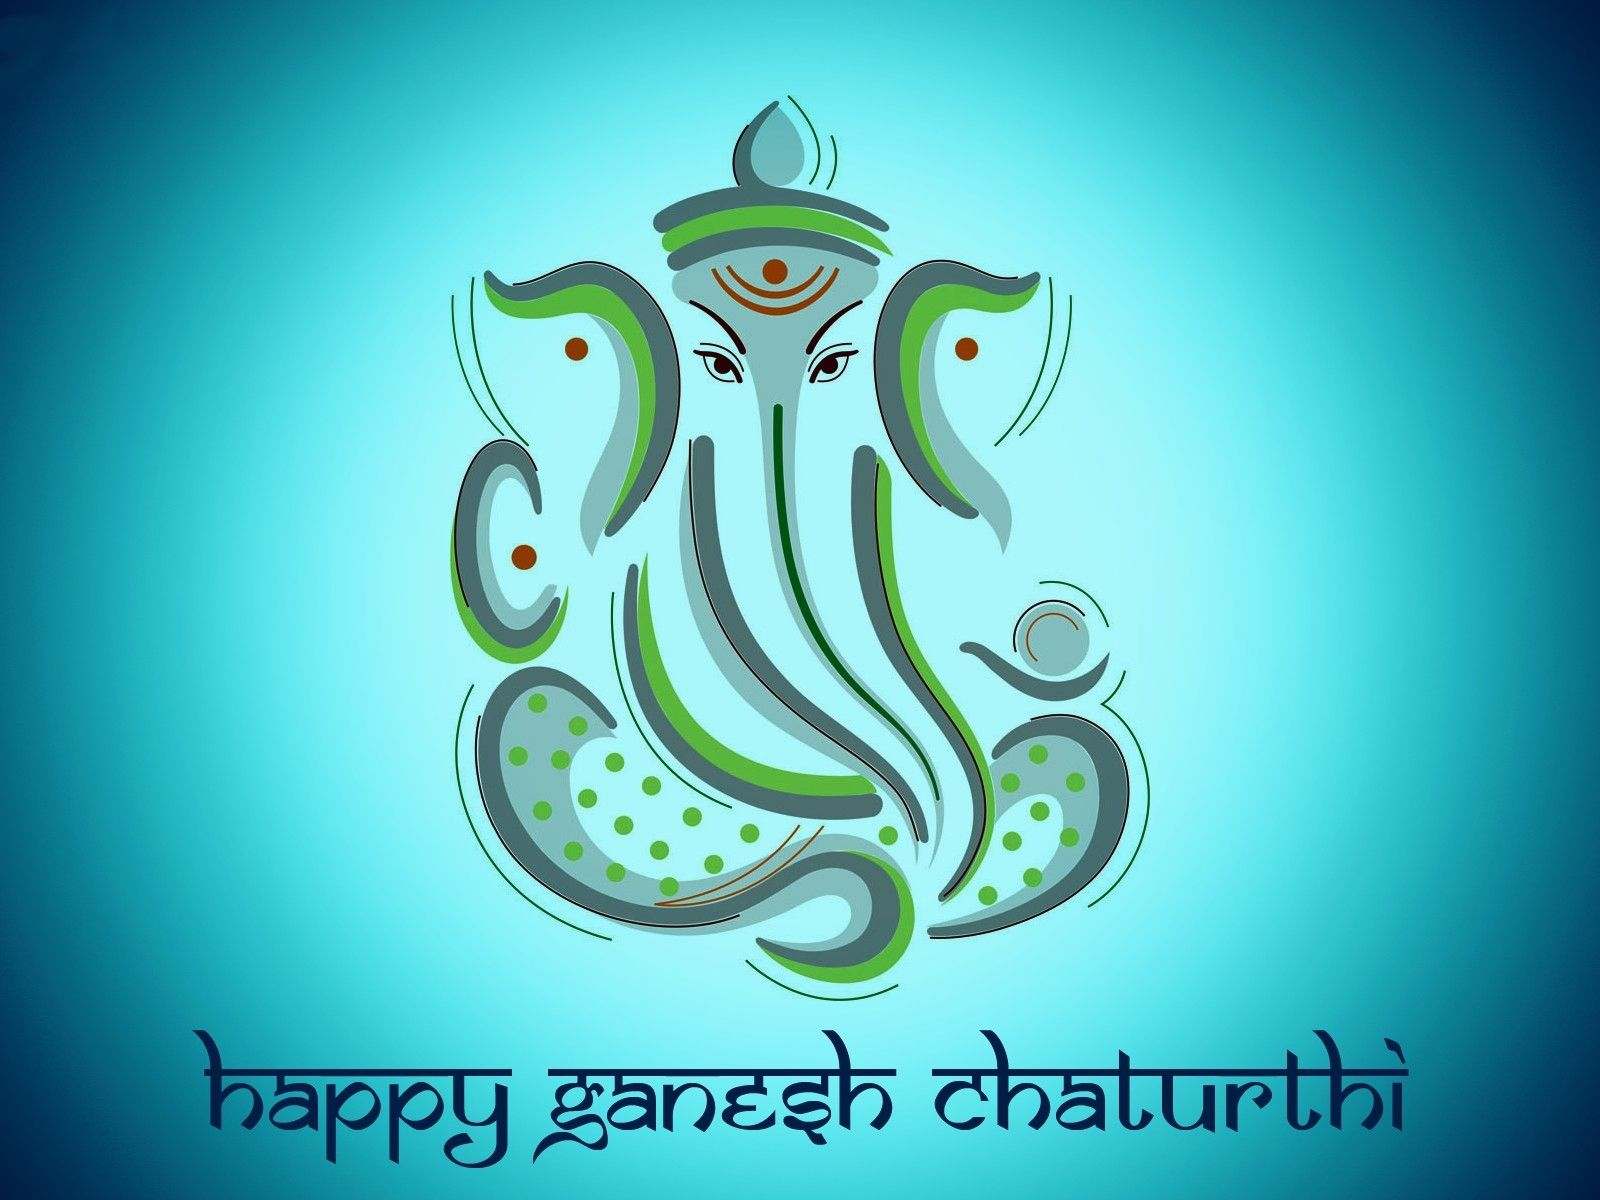 Ganesh Chaturthi Hd Wallpapers Latest Photoshoots Beautiful Images And More For Happy Ganesh Chaturthi Happy Ganesh Chaturthi Images Ganesh Chaturthi Photos